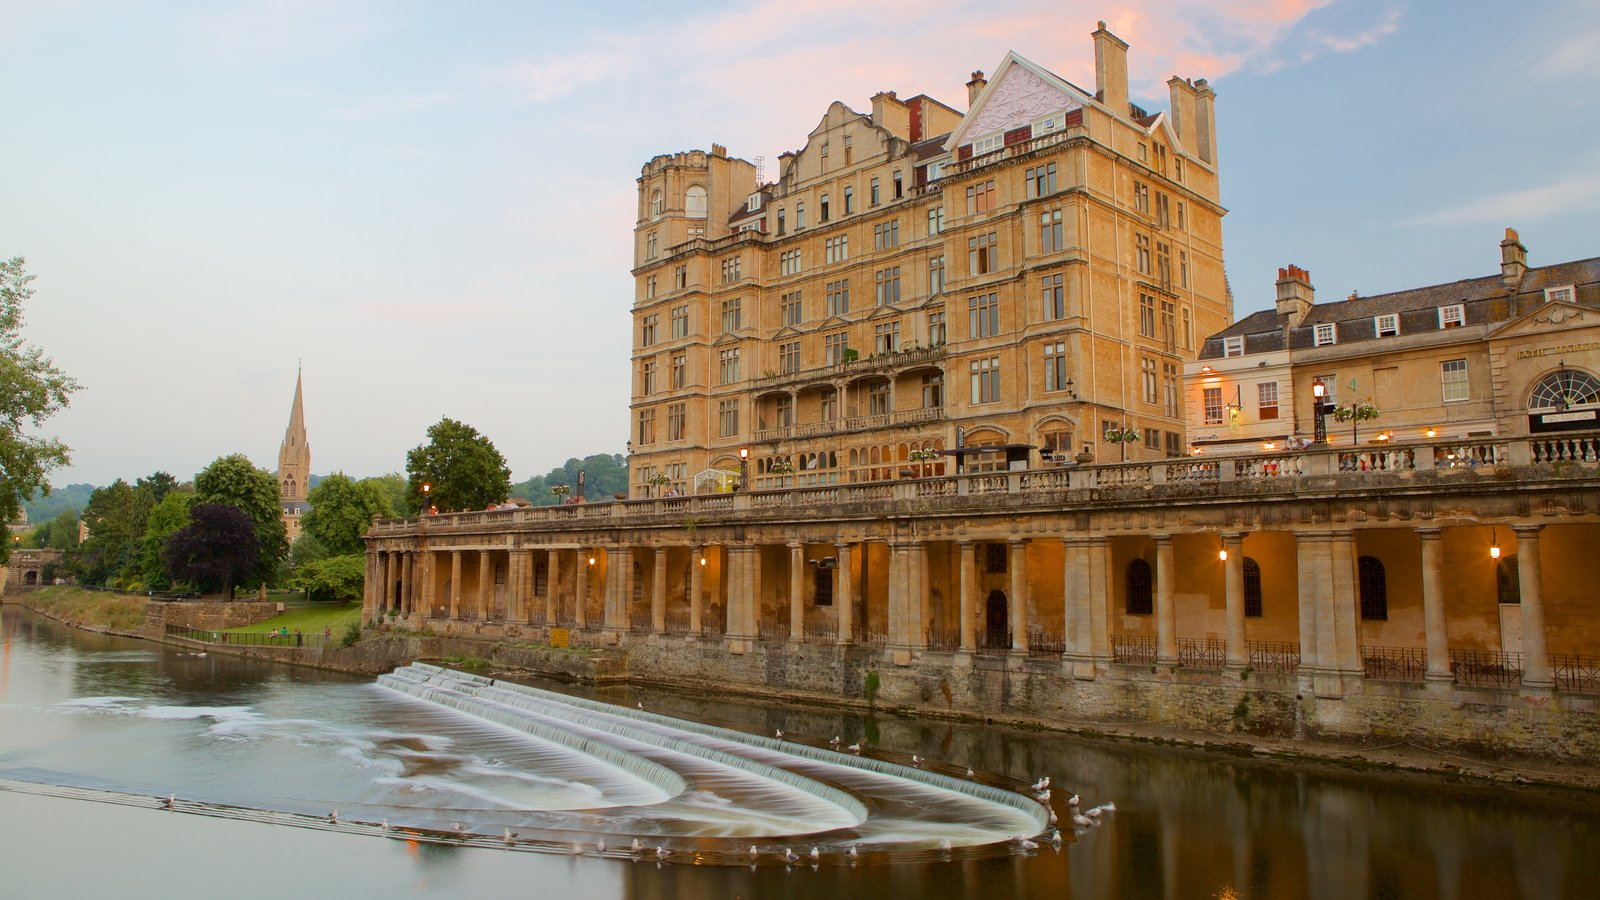 Pulteney Bridge which includes chateau or palace, heritage architecture and a river or creek